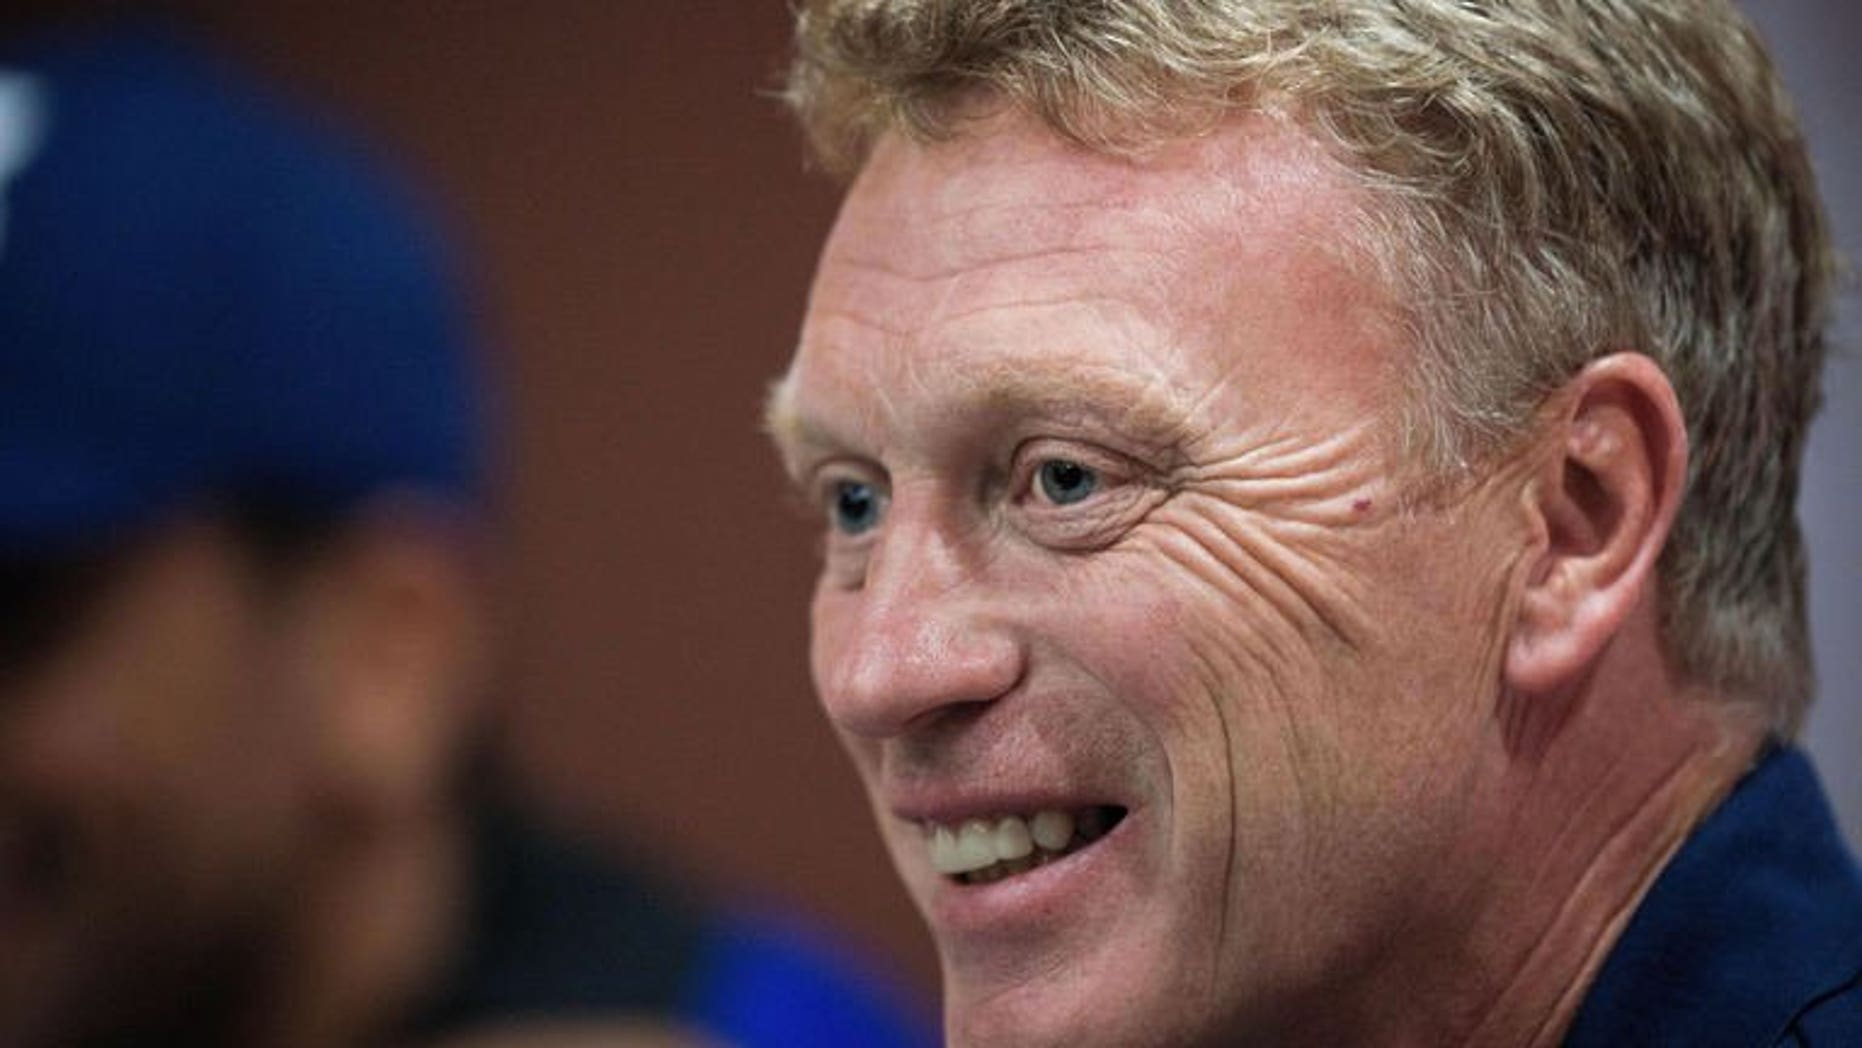 Manchester United football manager David Moyes speaks to the media in Bangkok on July 12, 2013. Moyes says he still needs to come to terms with the level of scrutiny he faces as manager of one of the world's biggest football clubs.